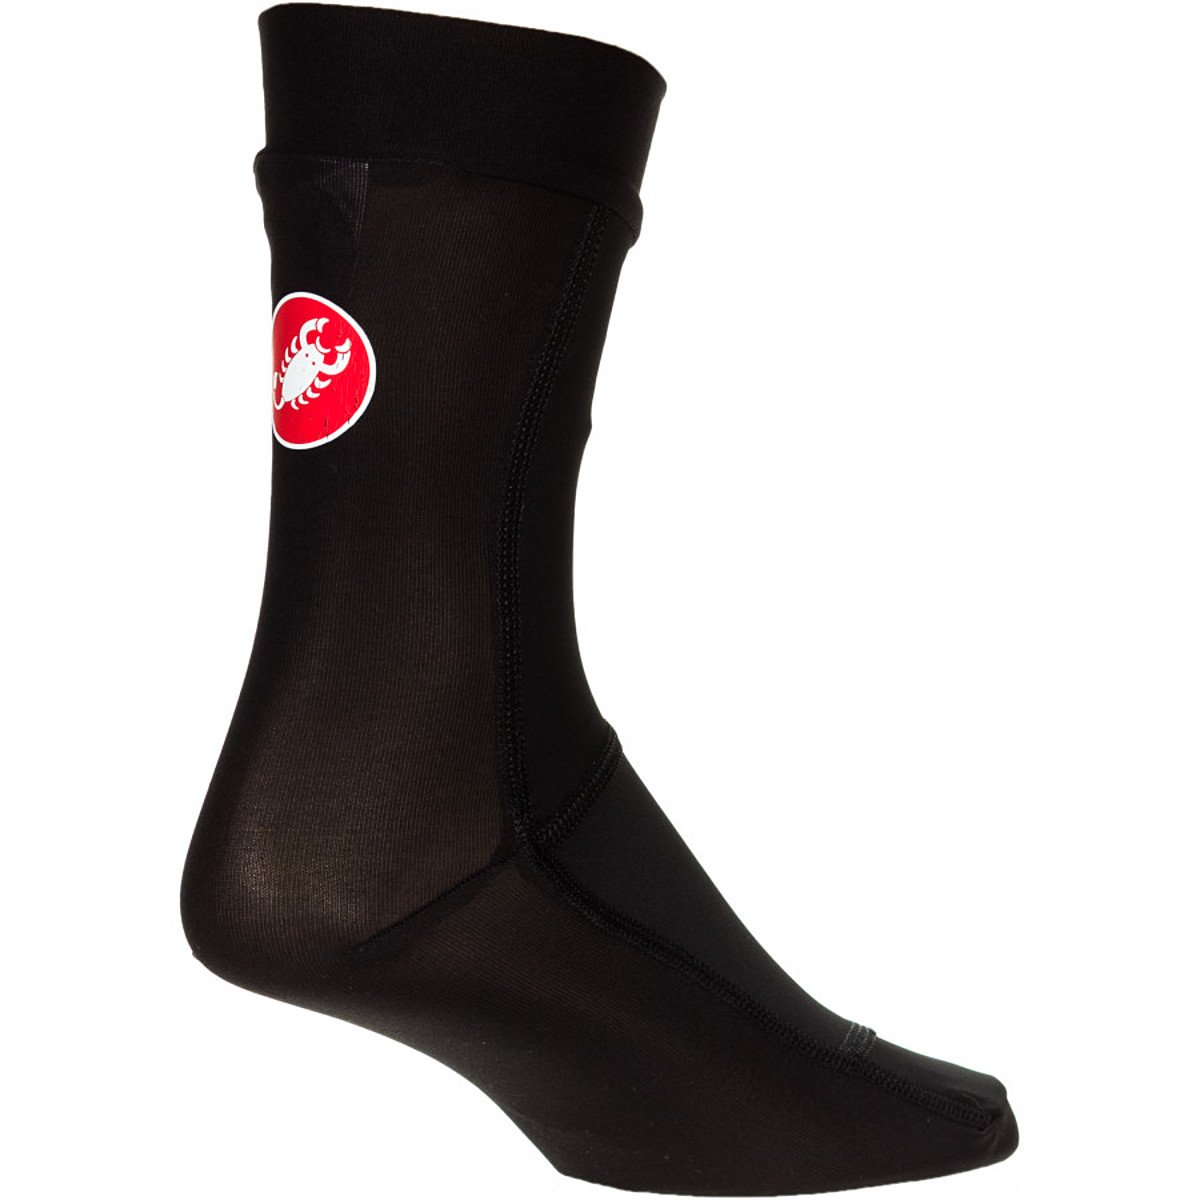 Amazon.com : Castelli Duo Windstopper Sock Black, M : Athletic Socks : Sports & Outdoors